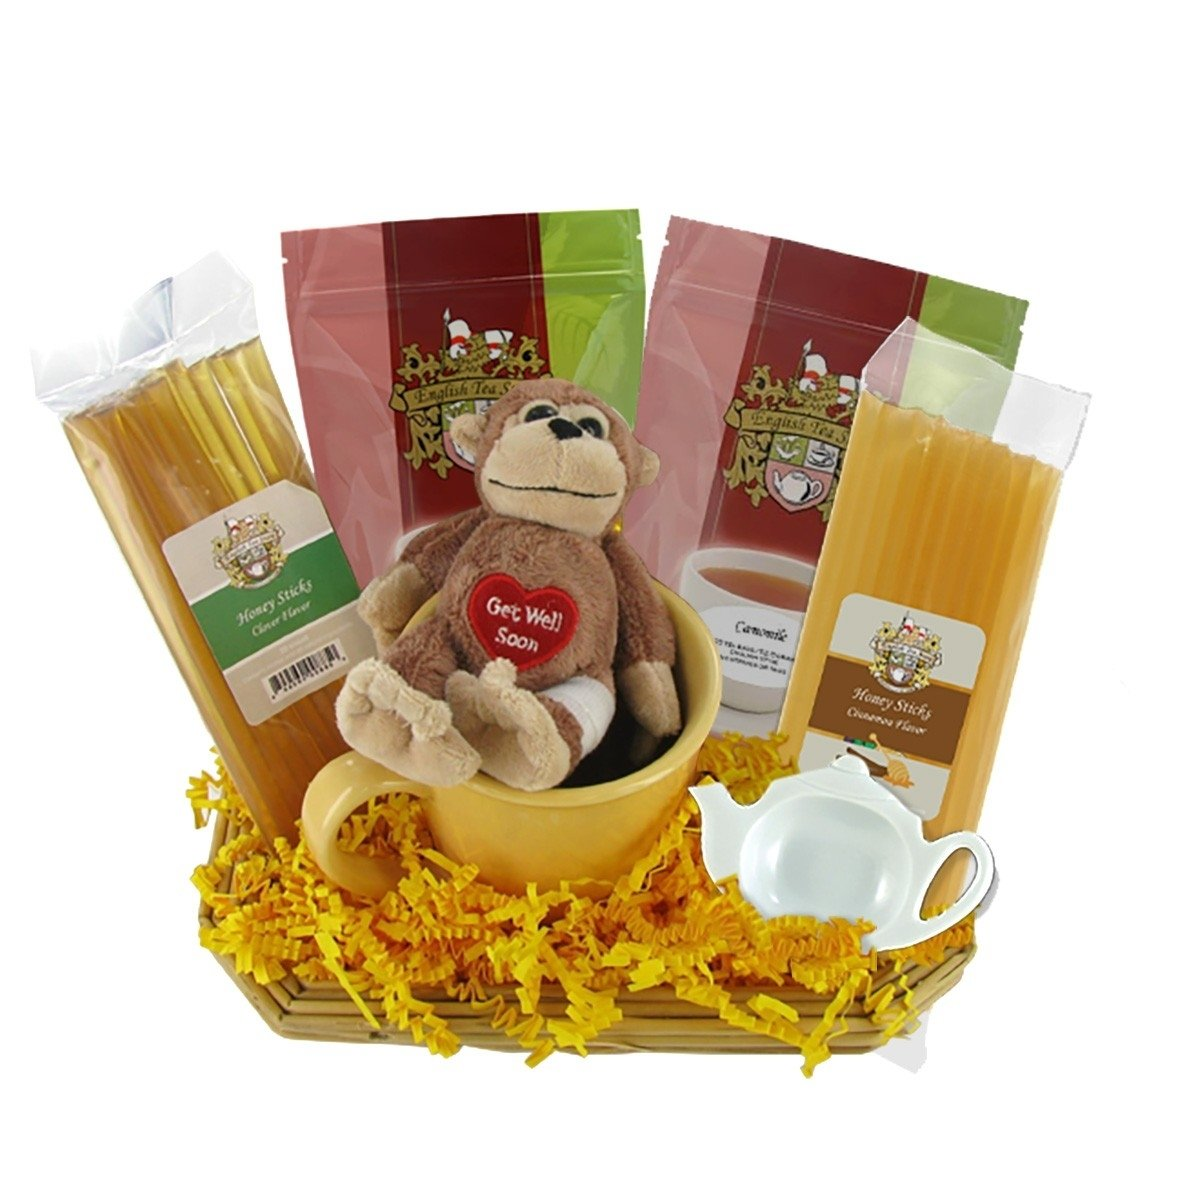 10 Nice Get Well Soon Basket Ideas get well soon gift basket with stuffed toy 1 2021